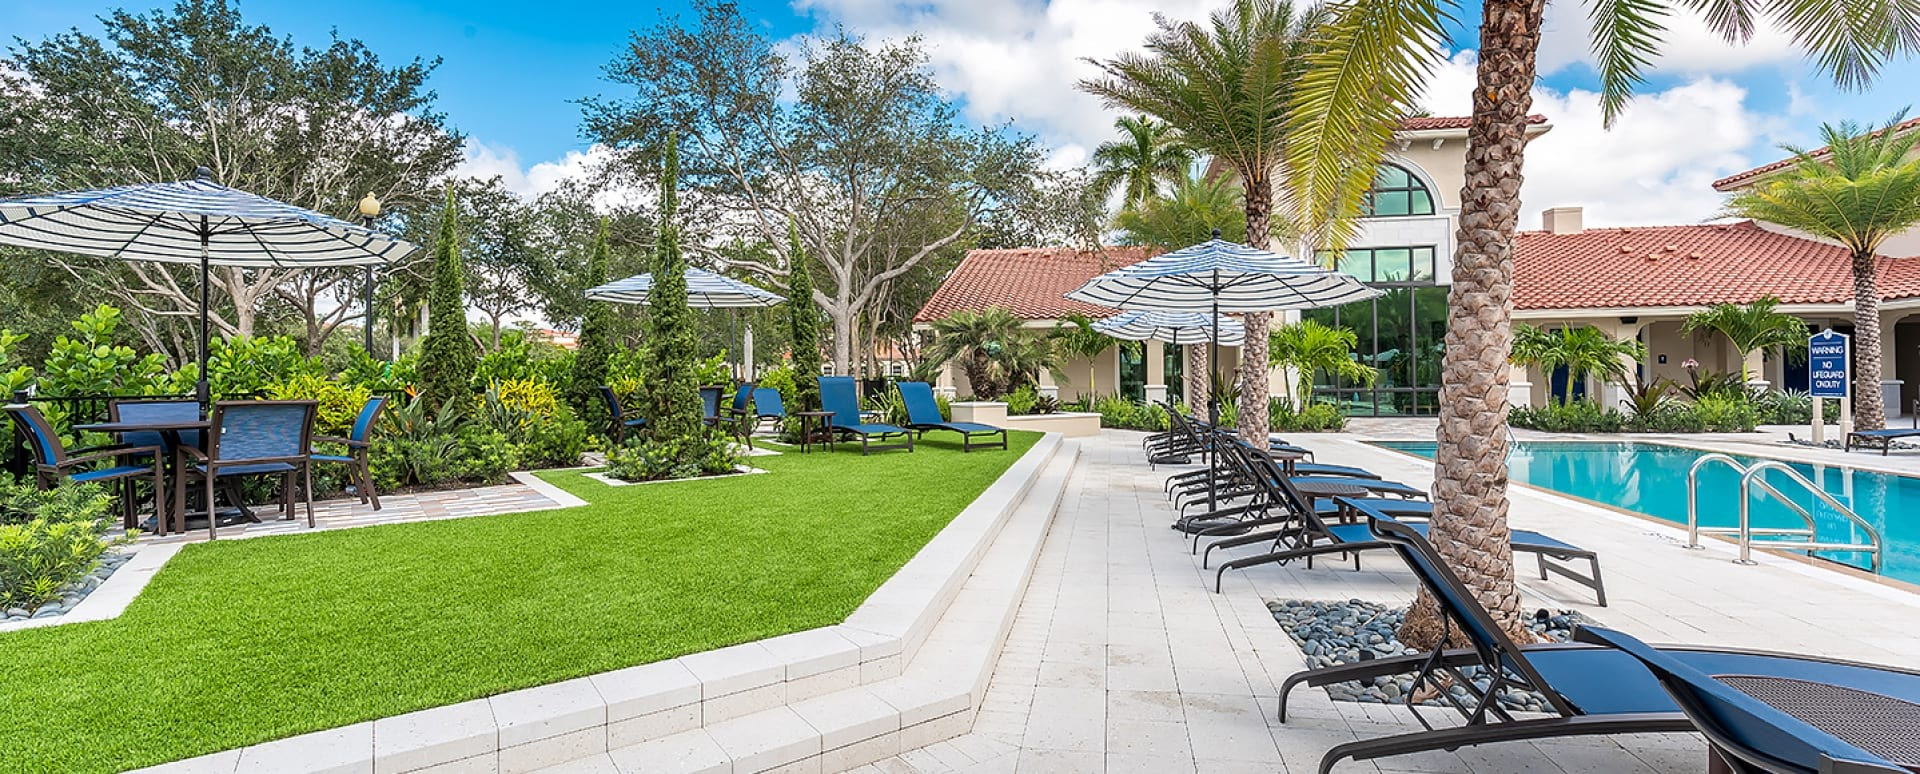 Apartment Complexes in West Palm Beach